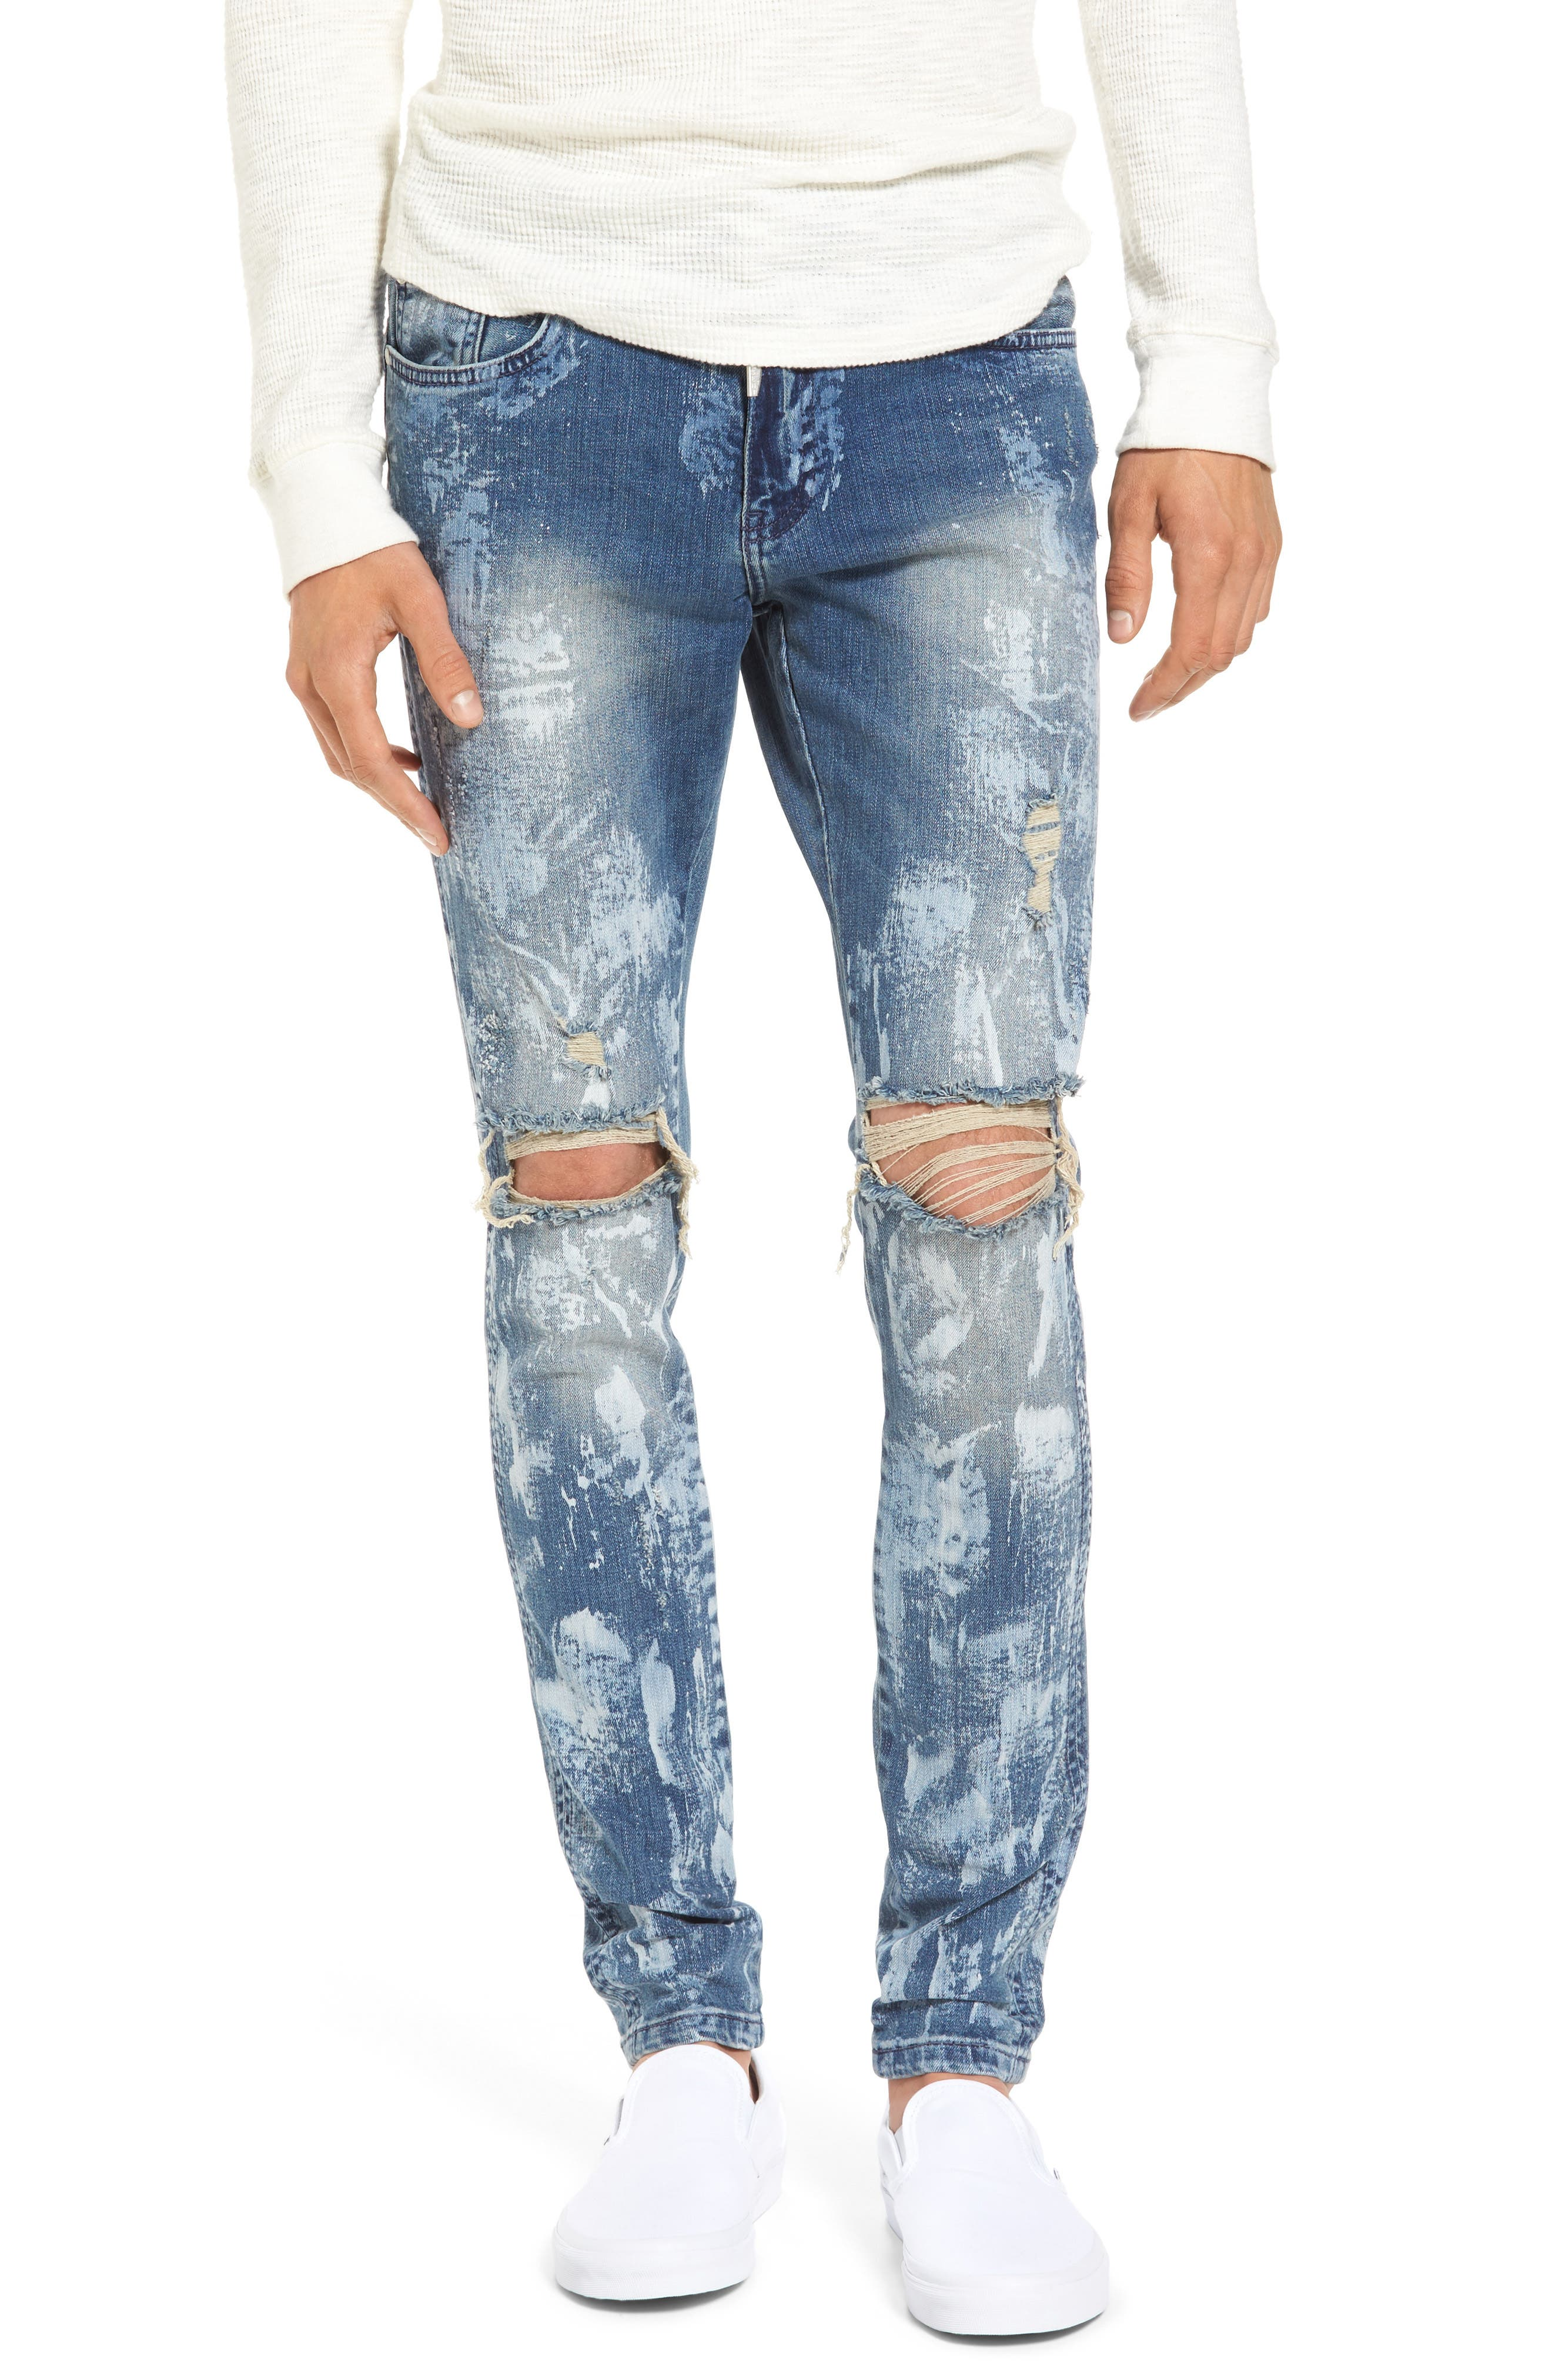 REPRESENT Slim Fit Destroyed Jeans, Heavy Bleach